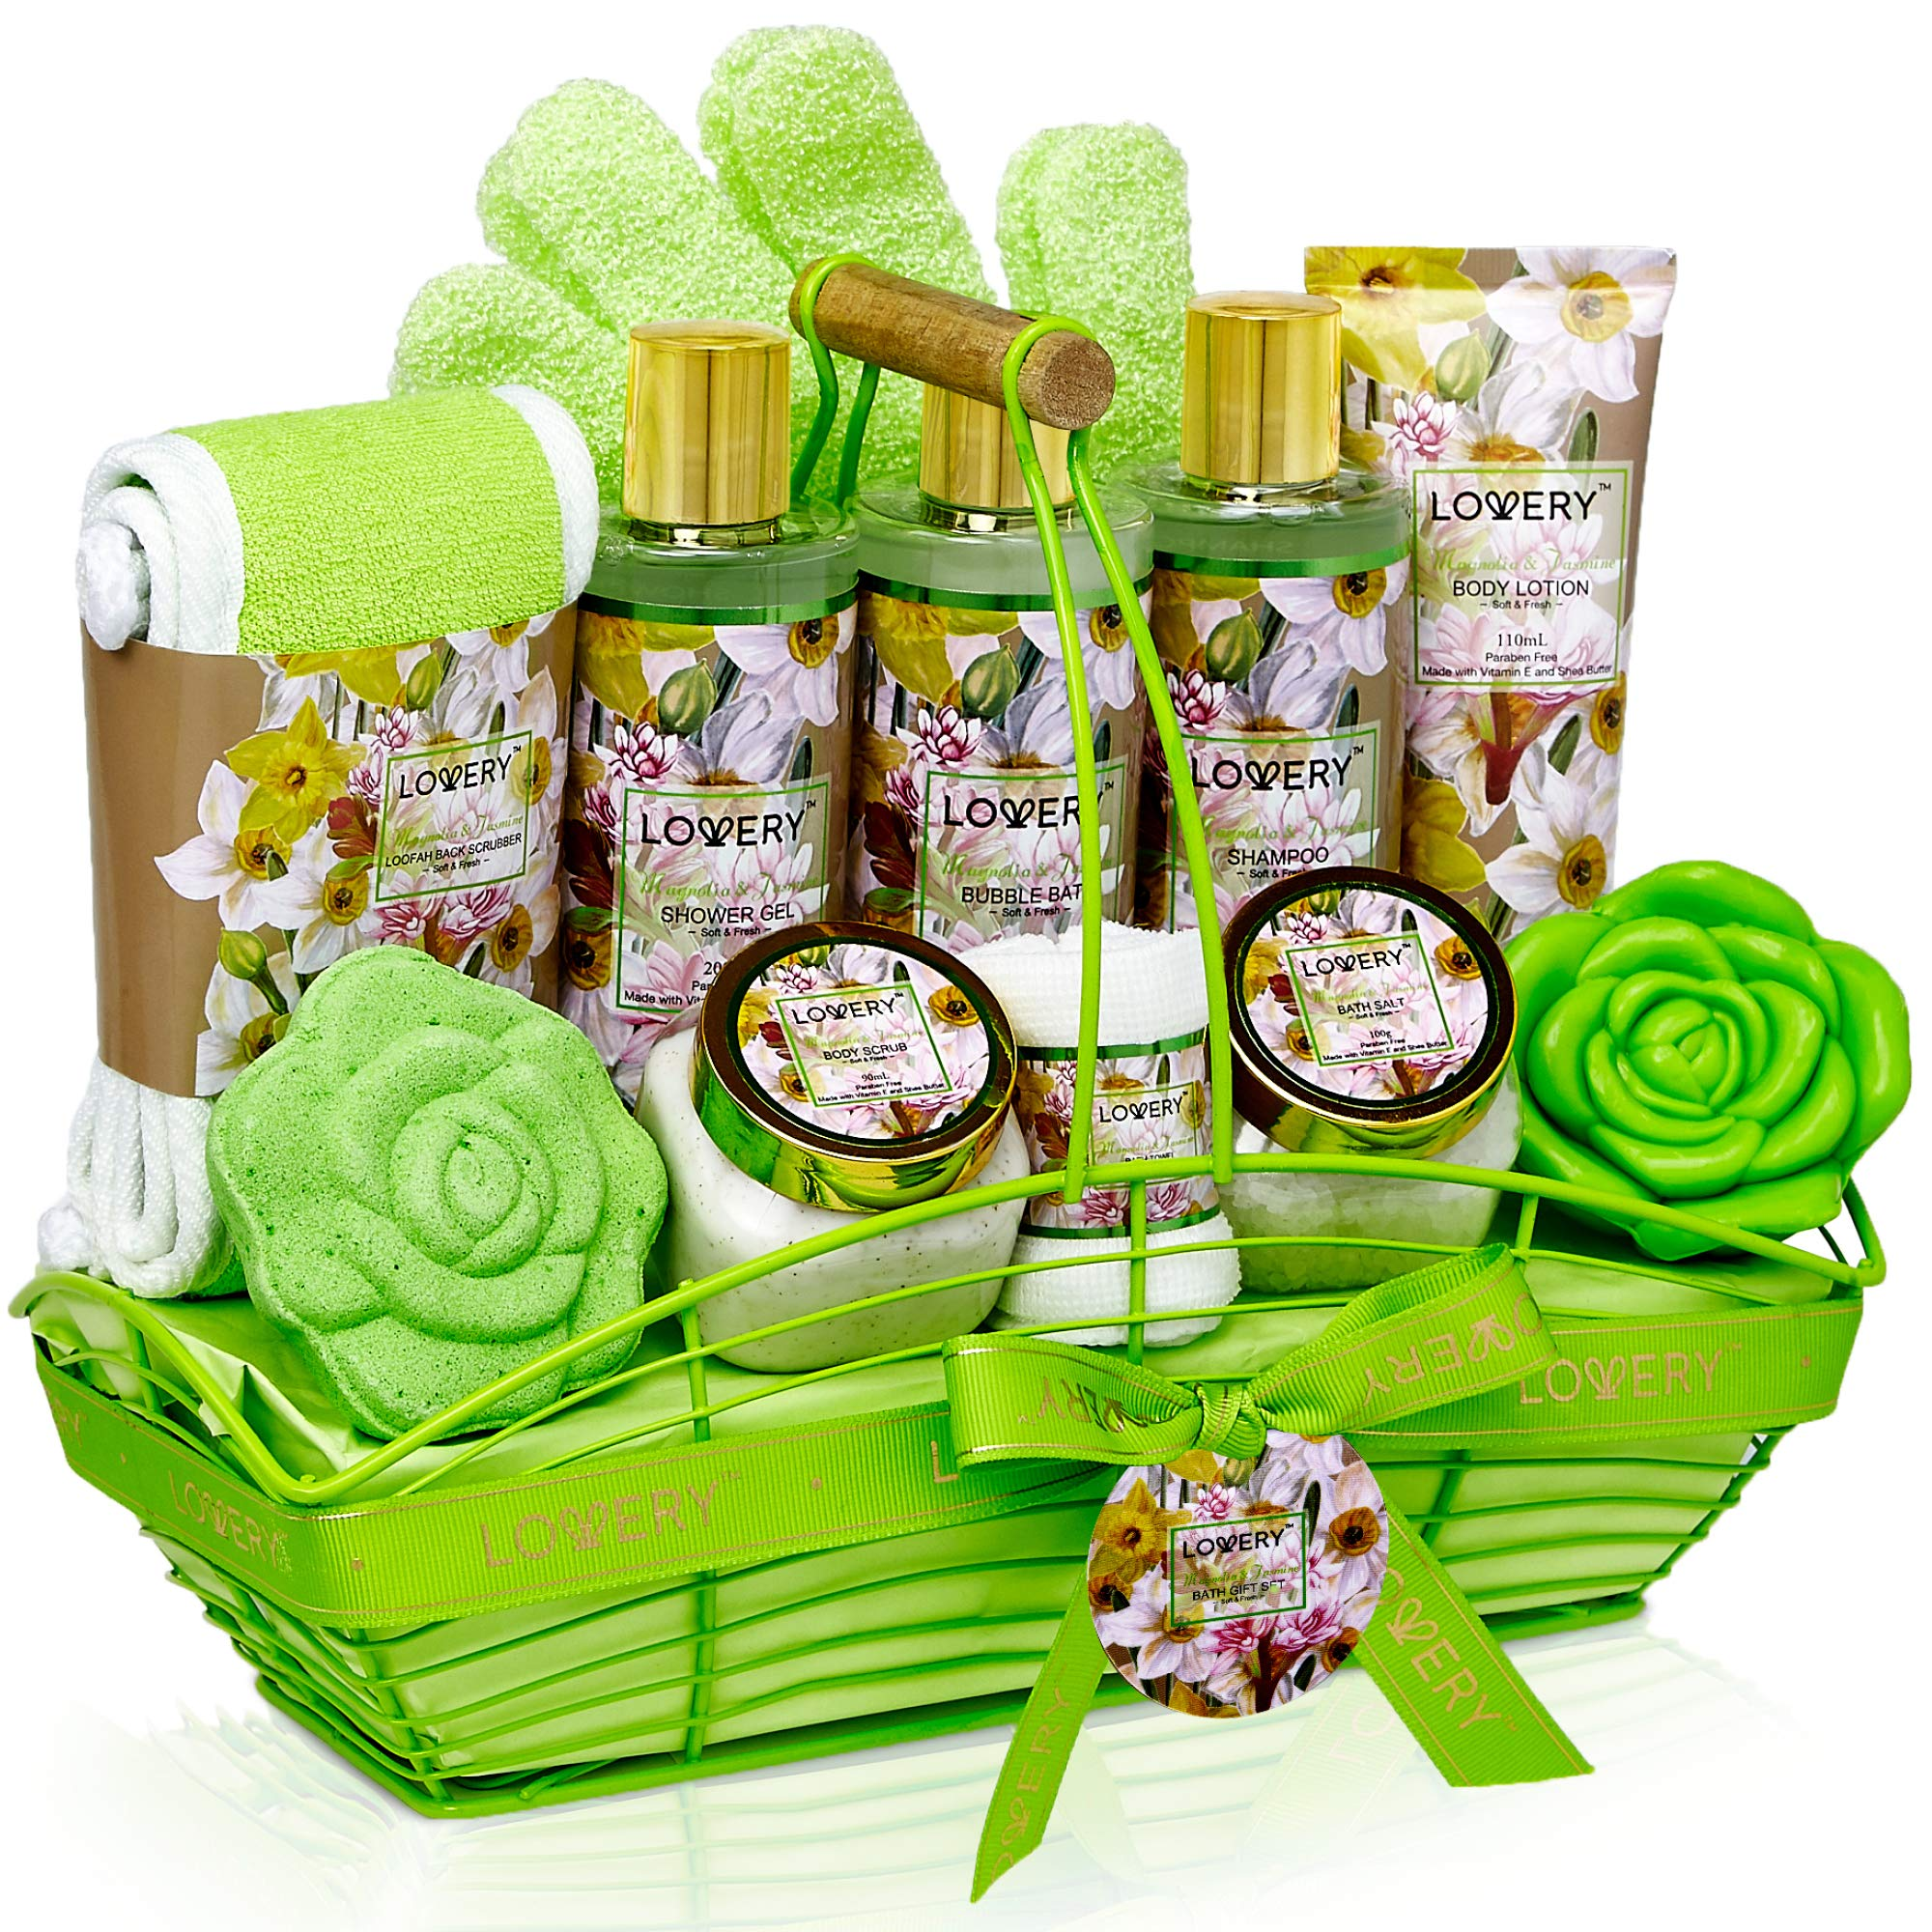 Bath and Body Gift Basket For Women & Men - Magnolia and Jasmine Home Spa Set, Includes Fragrant Lotions, Bath Bomb, Towel, Shower Gloves, Green Wired Bread Basket and More - 13 Piece Set by LOVERY